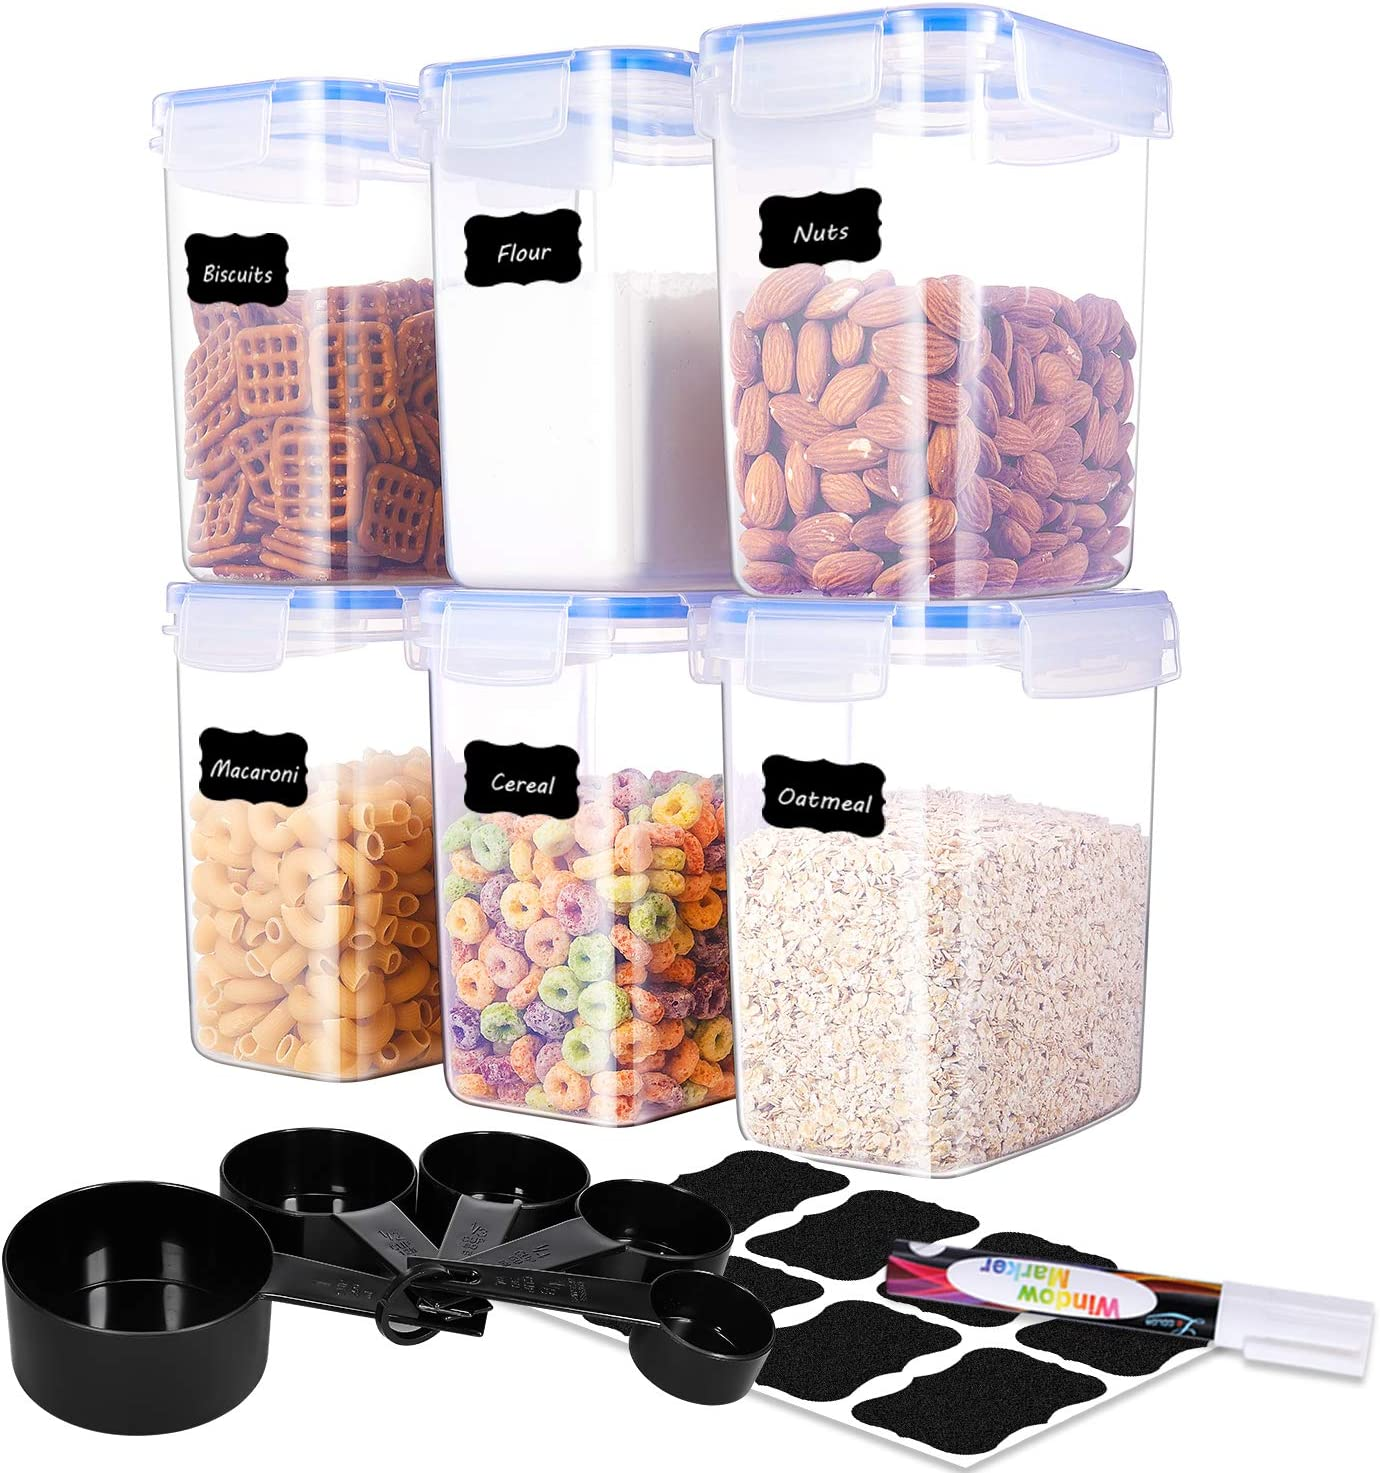 ME.FAN Medium Food Storage Containers [Set of 6] Airtight Storage Keeper 1.6L(54.1oz) with 5 Set Measuring Cups 24 Chalkboard labels & Pen Ideal for Sugar, Flour, Baking Supplies (Dark Blue)